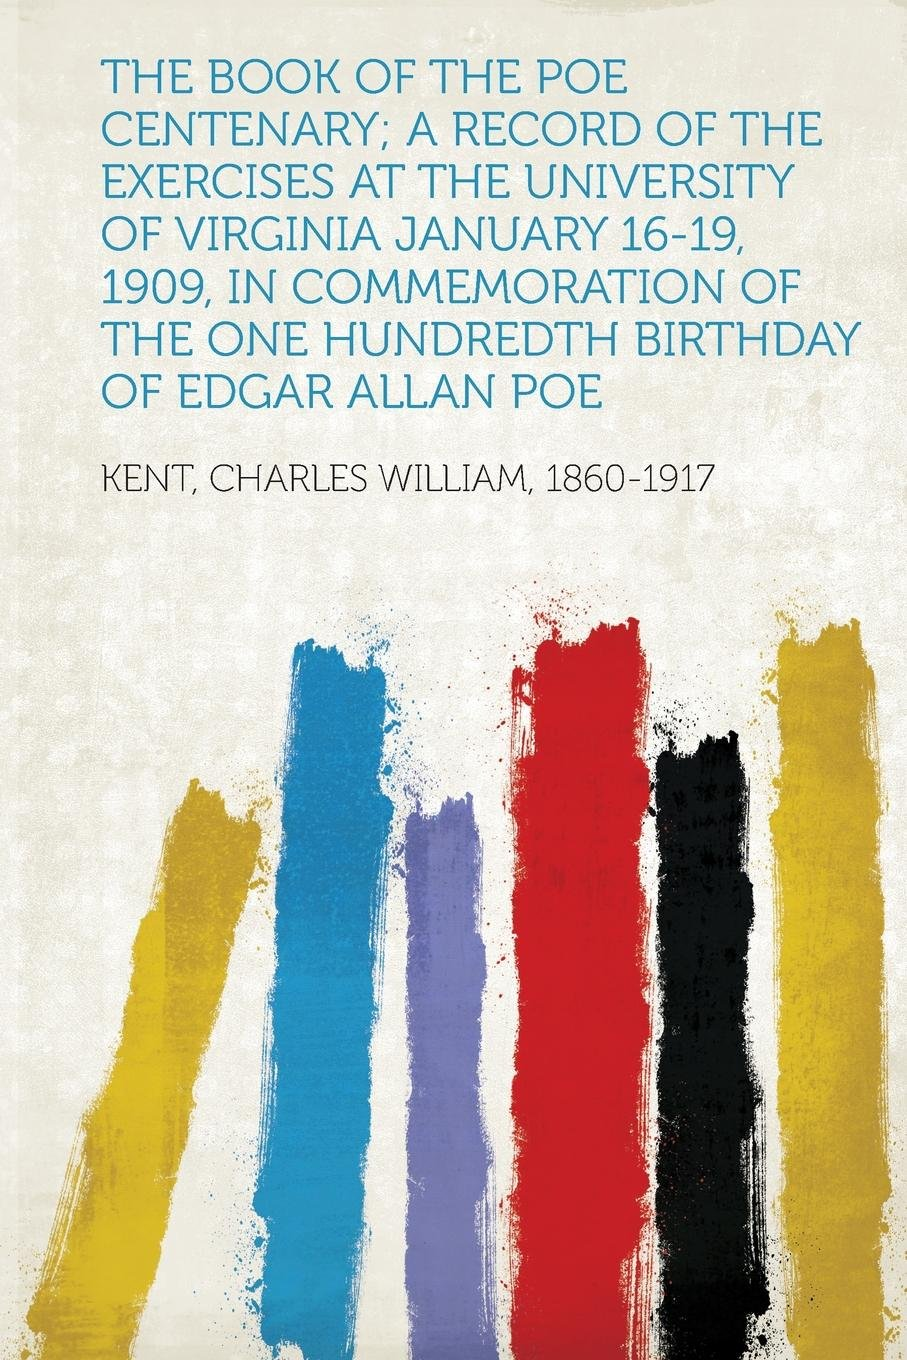 Download The Book of the Poe Centenary; a Record of the Exercises at the University of Virginia January 16-19, 1909, in Commemoration of the One Hundredth Birthday of Edgar Allan Poe ebook